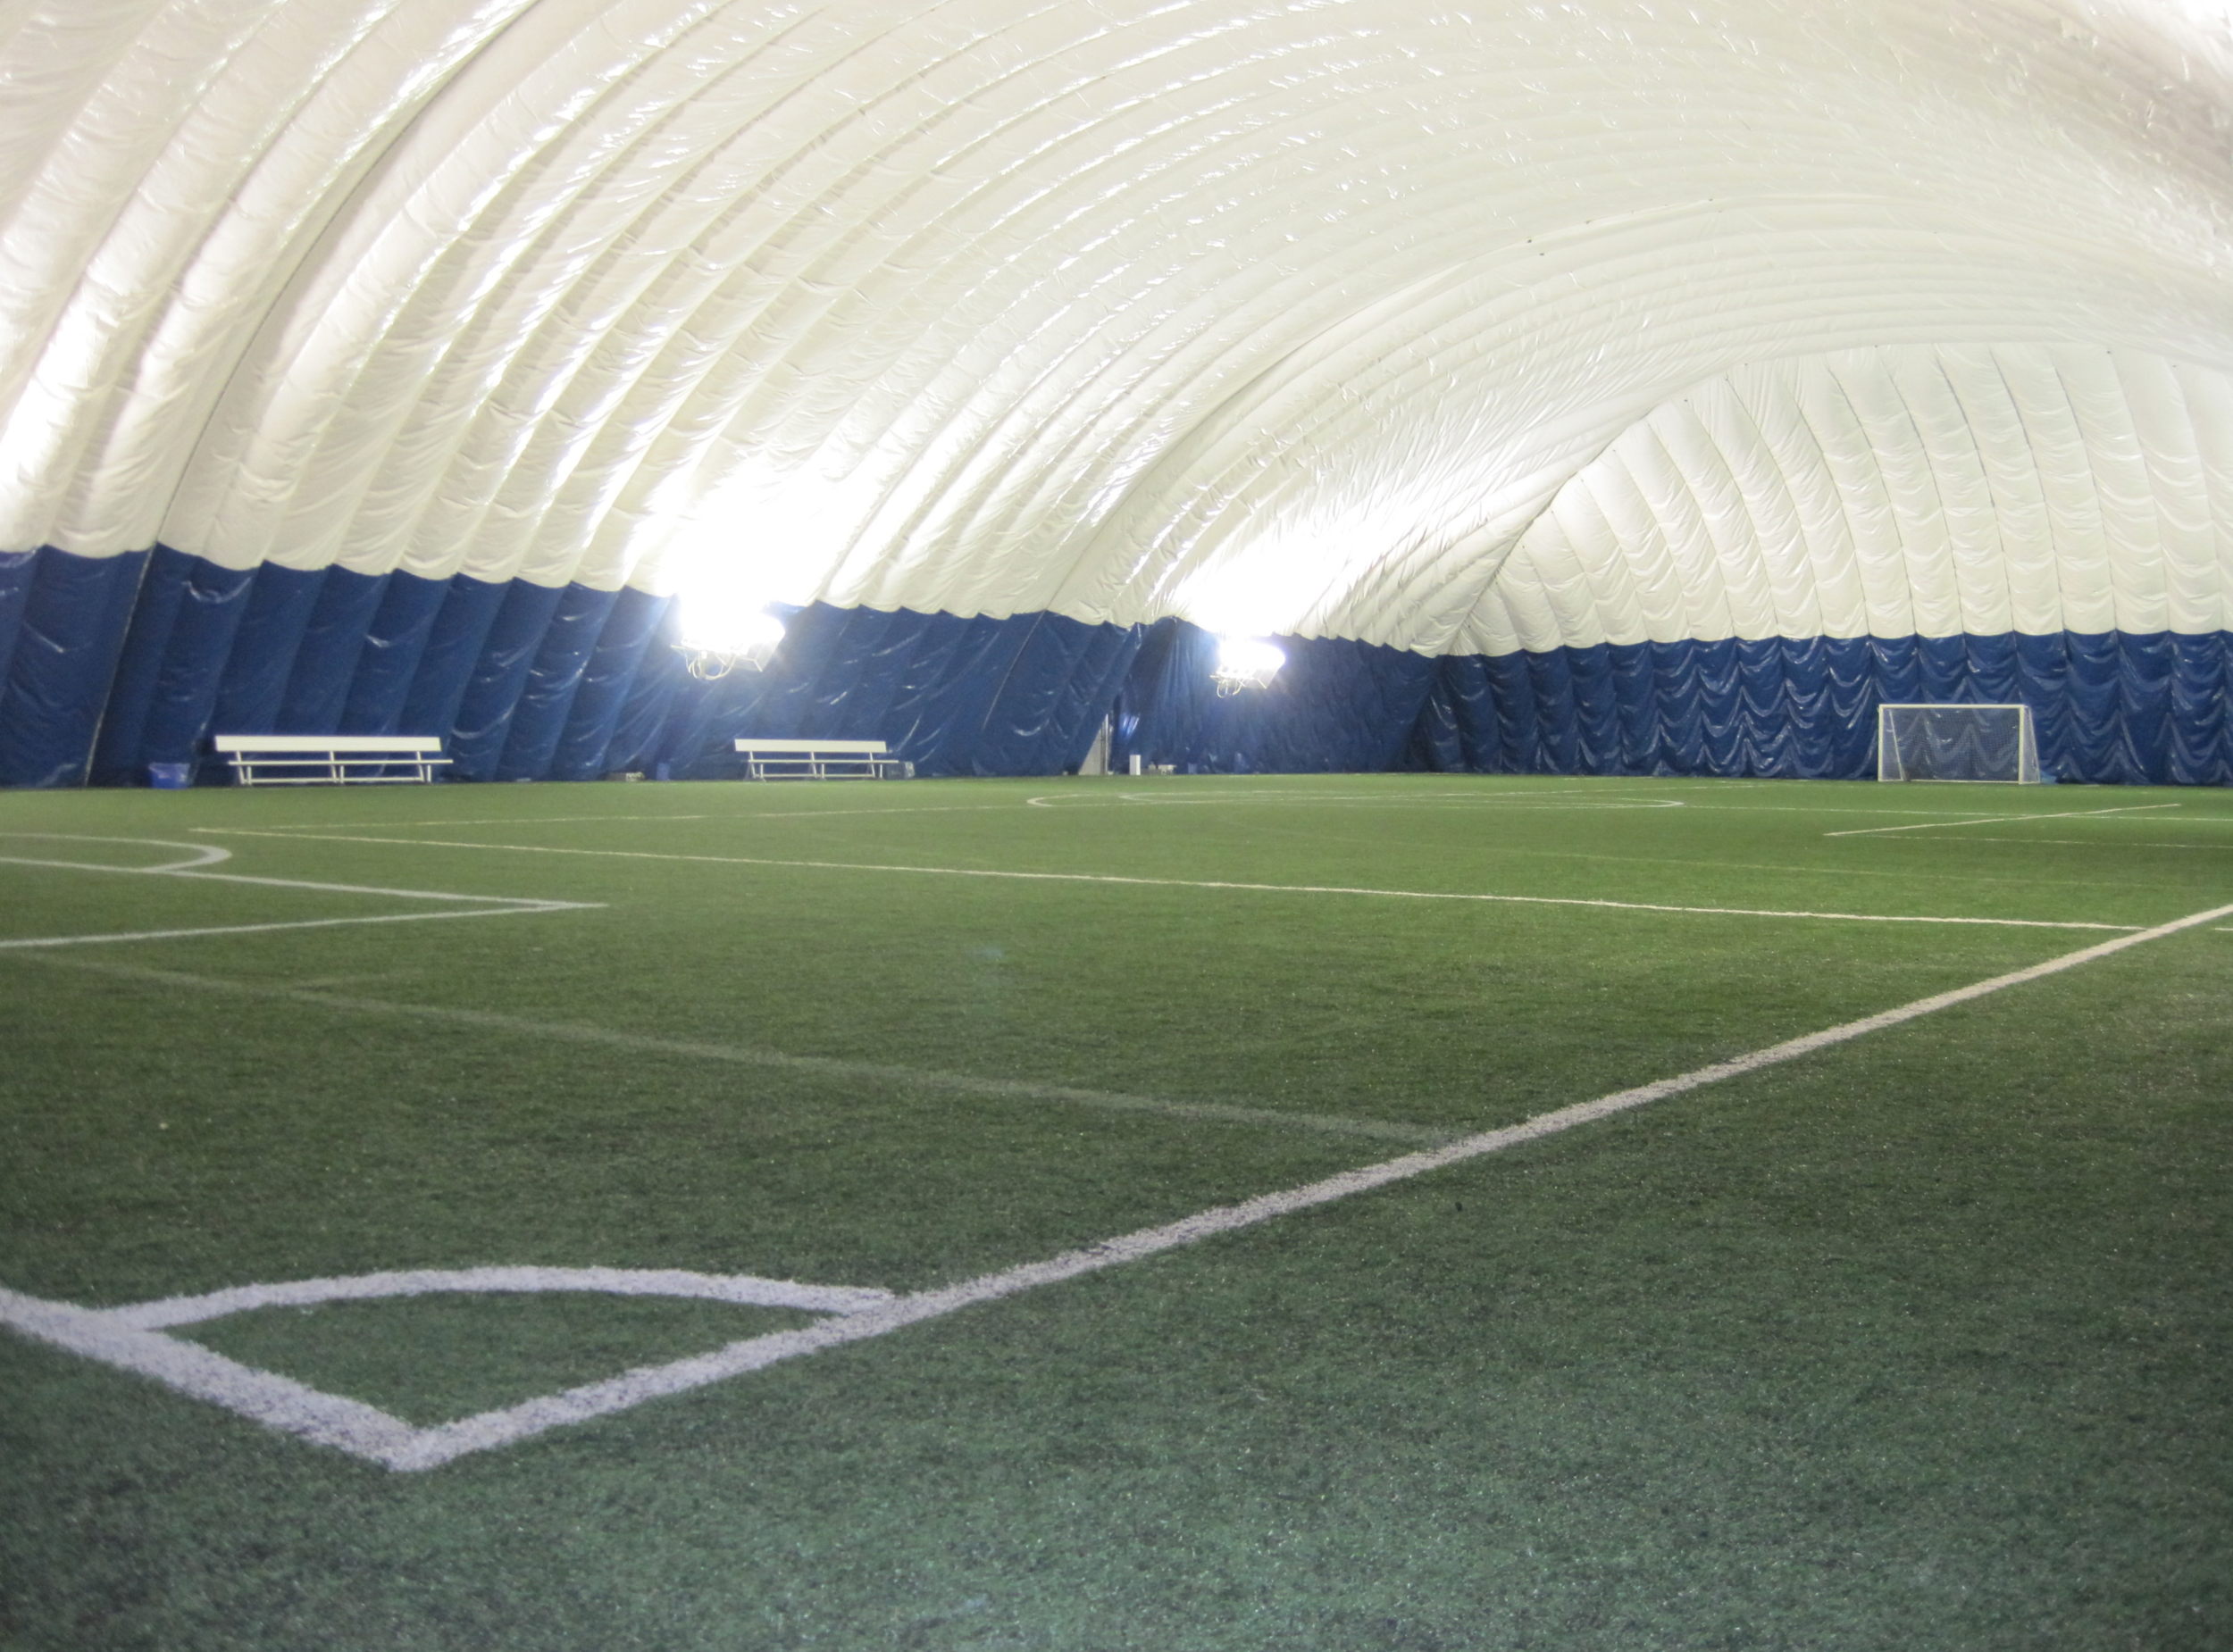 The Future - Currently, the main focus of the Foundation is to build and operate an indoor multi sports facility in Greater Sudbury.As a Foundation we are working to establish community partnerships to meet the goal of building this multi-sport facility. We will work with private, public and government agencies to accelerate success.As a non-profit entity, we are committed to ensure the facility is built and operated in such a manner that will be efficient and cost effective for all citizens of Greater Sudbury.The Fabio Belli Foundation will put all profits back into the community to further improve facilities and access for all citizens.Fabio's vision will be fulfilled.